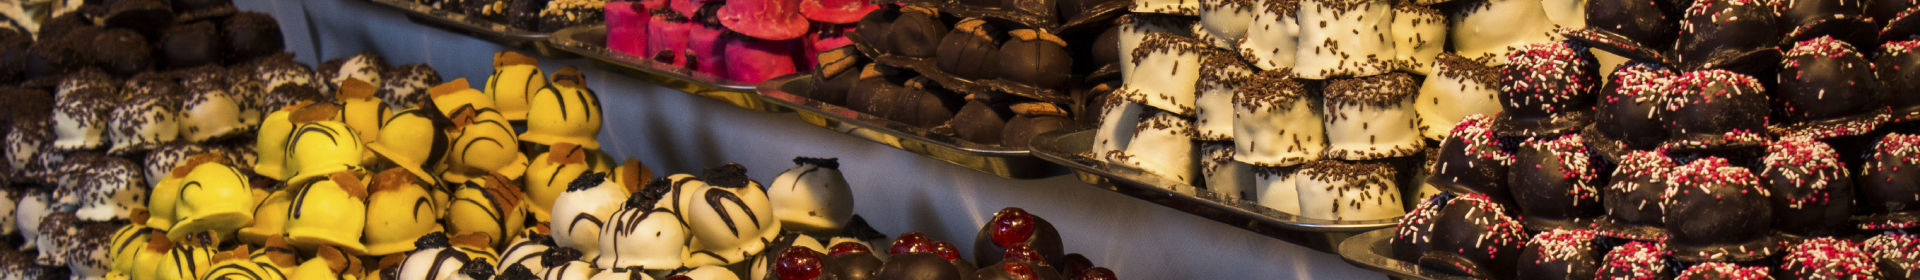 chocolate-display-at-the-brussels-chocolate-fair